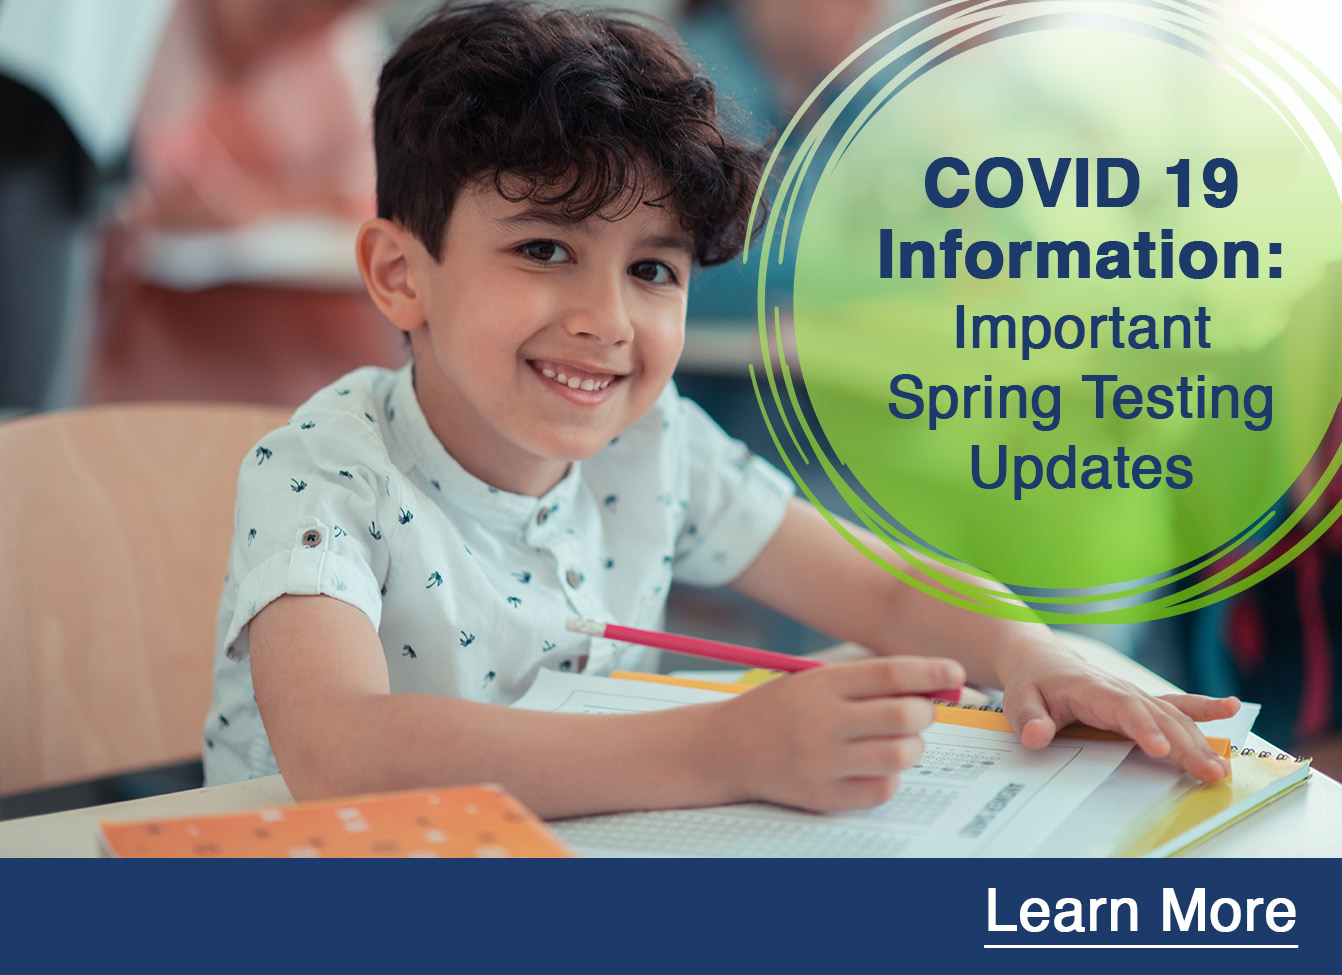 COVID 19 Information Spring Testing Updates